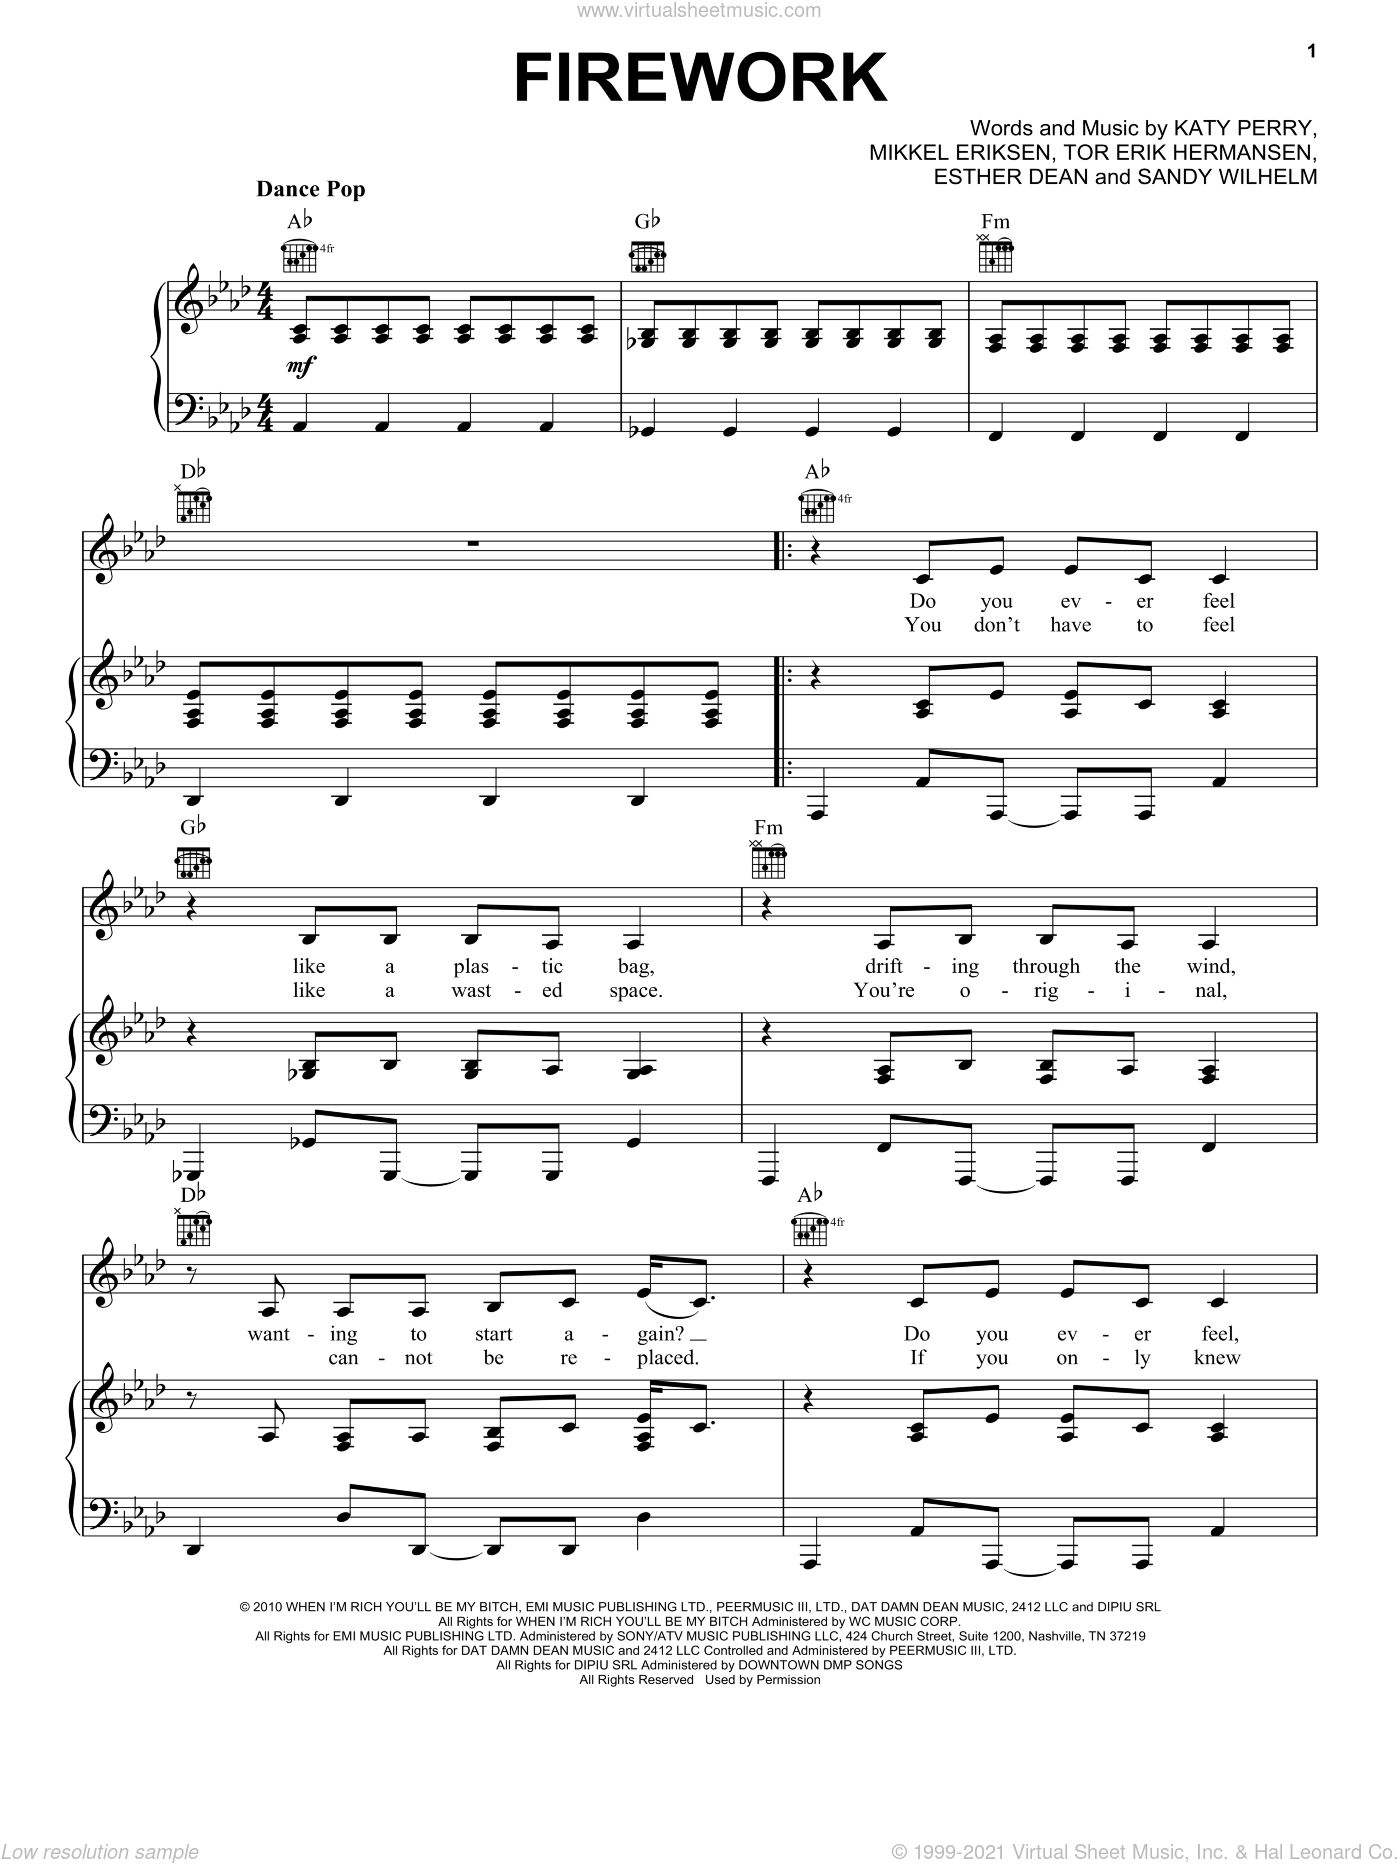 Firework sheet music for voice, piano or guitar by Katy Perry, Ester Dean, Mikkel Eriksen, Sandy Wilhelm and Tor Erik Hermansen, intermediate skill level